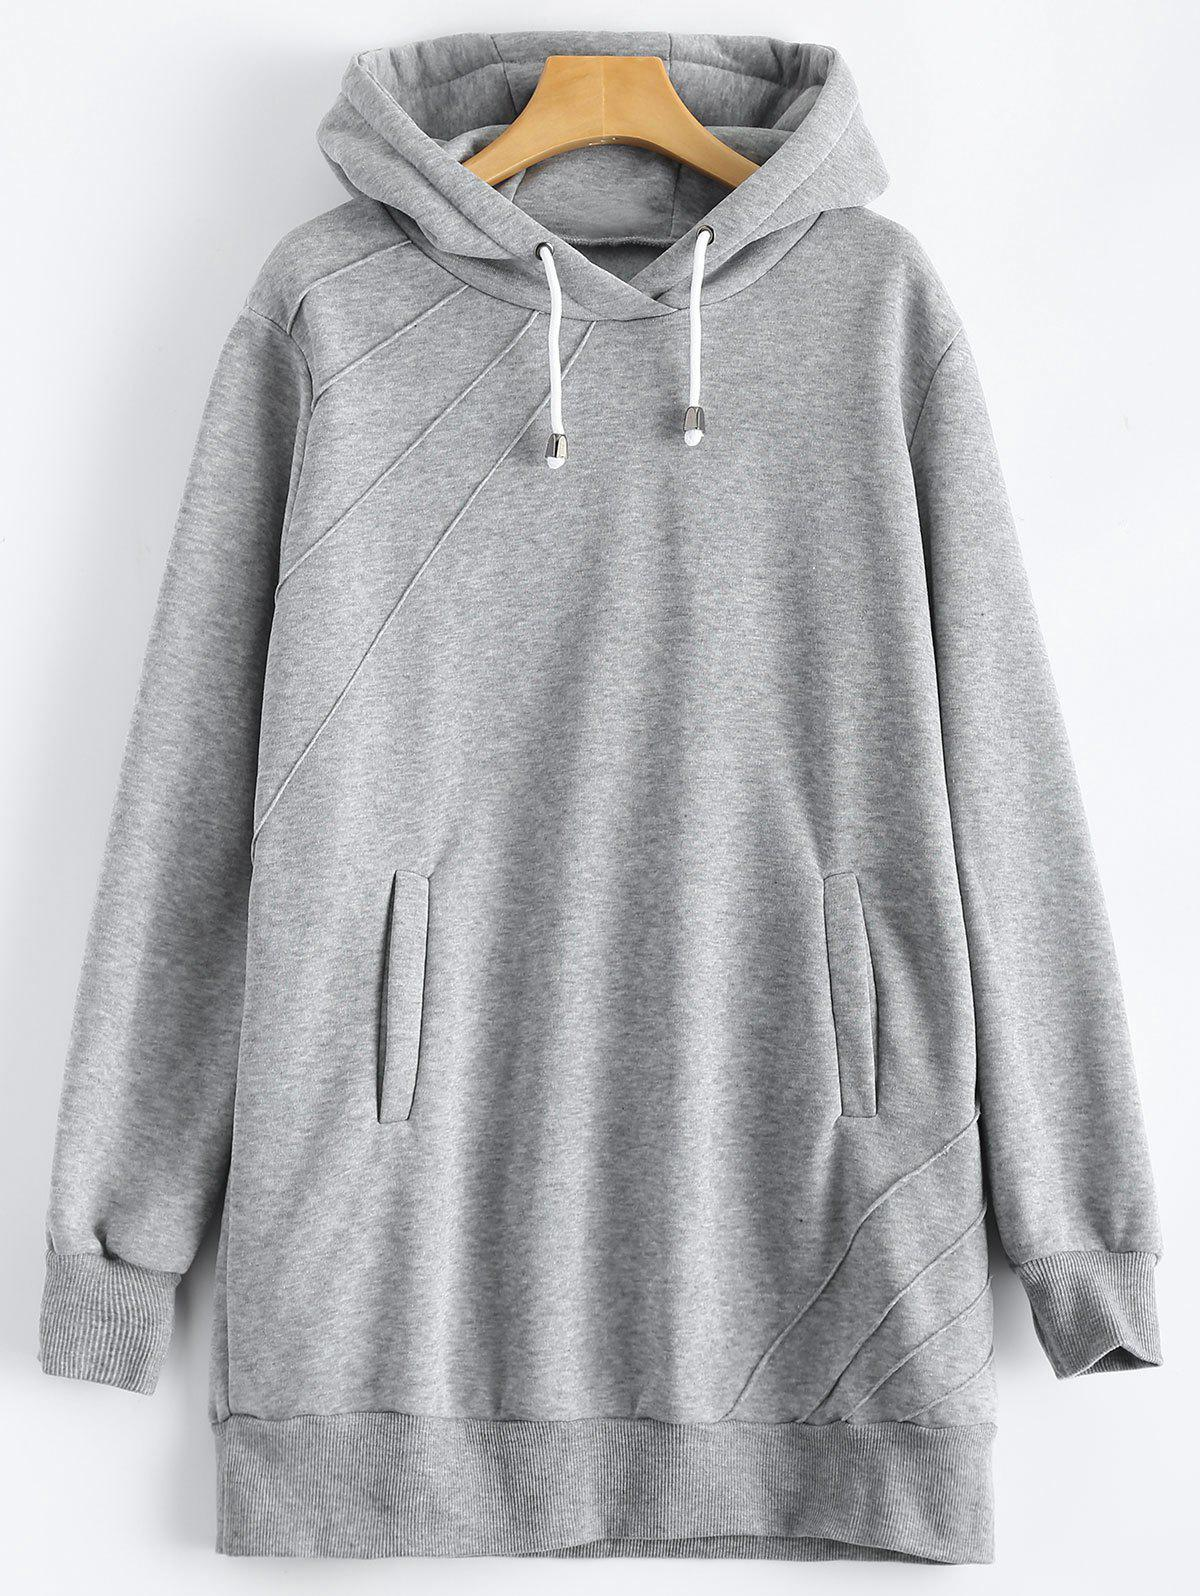 Pullover Hoodie with Pockets - GRAY L